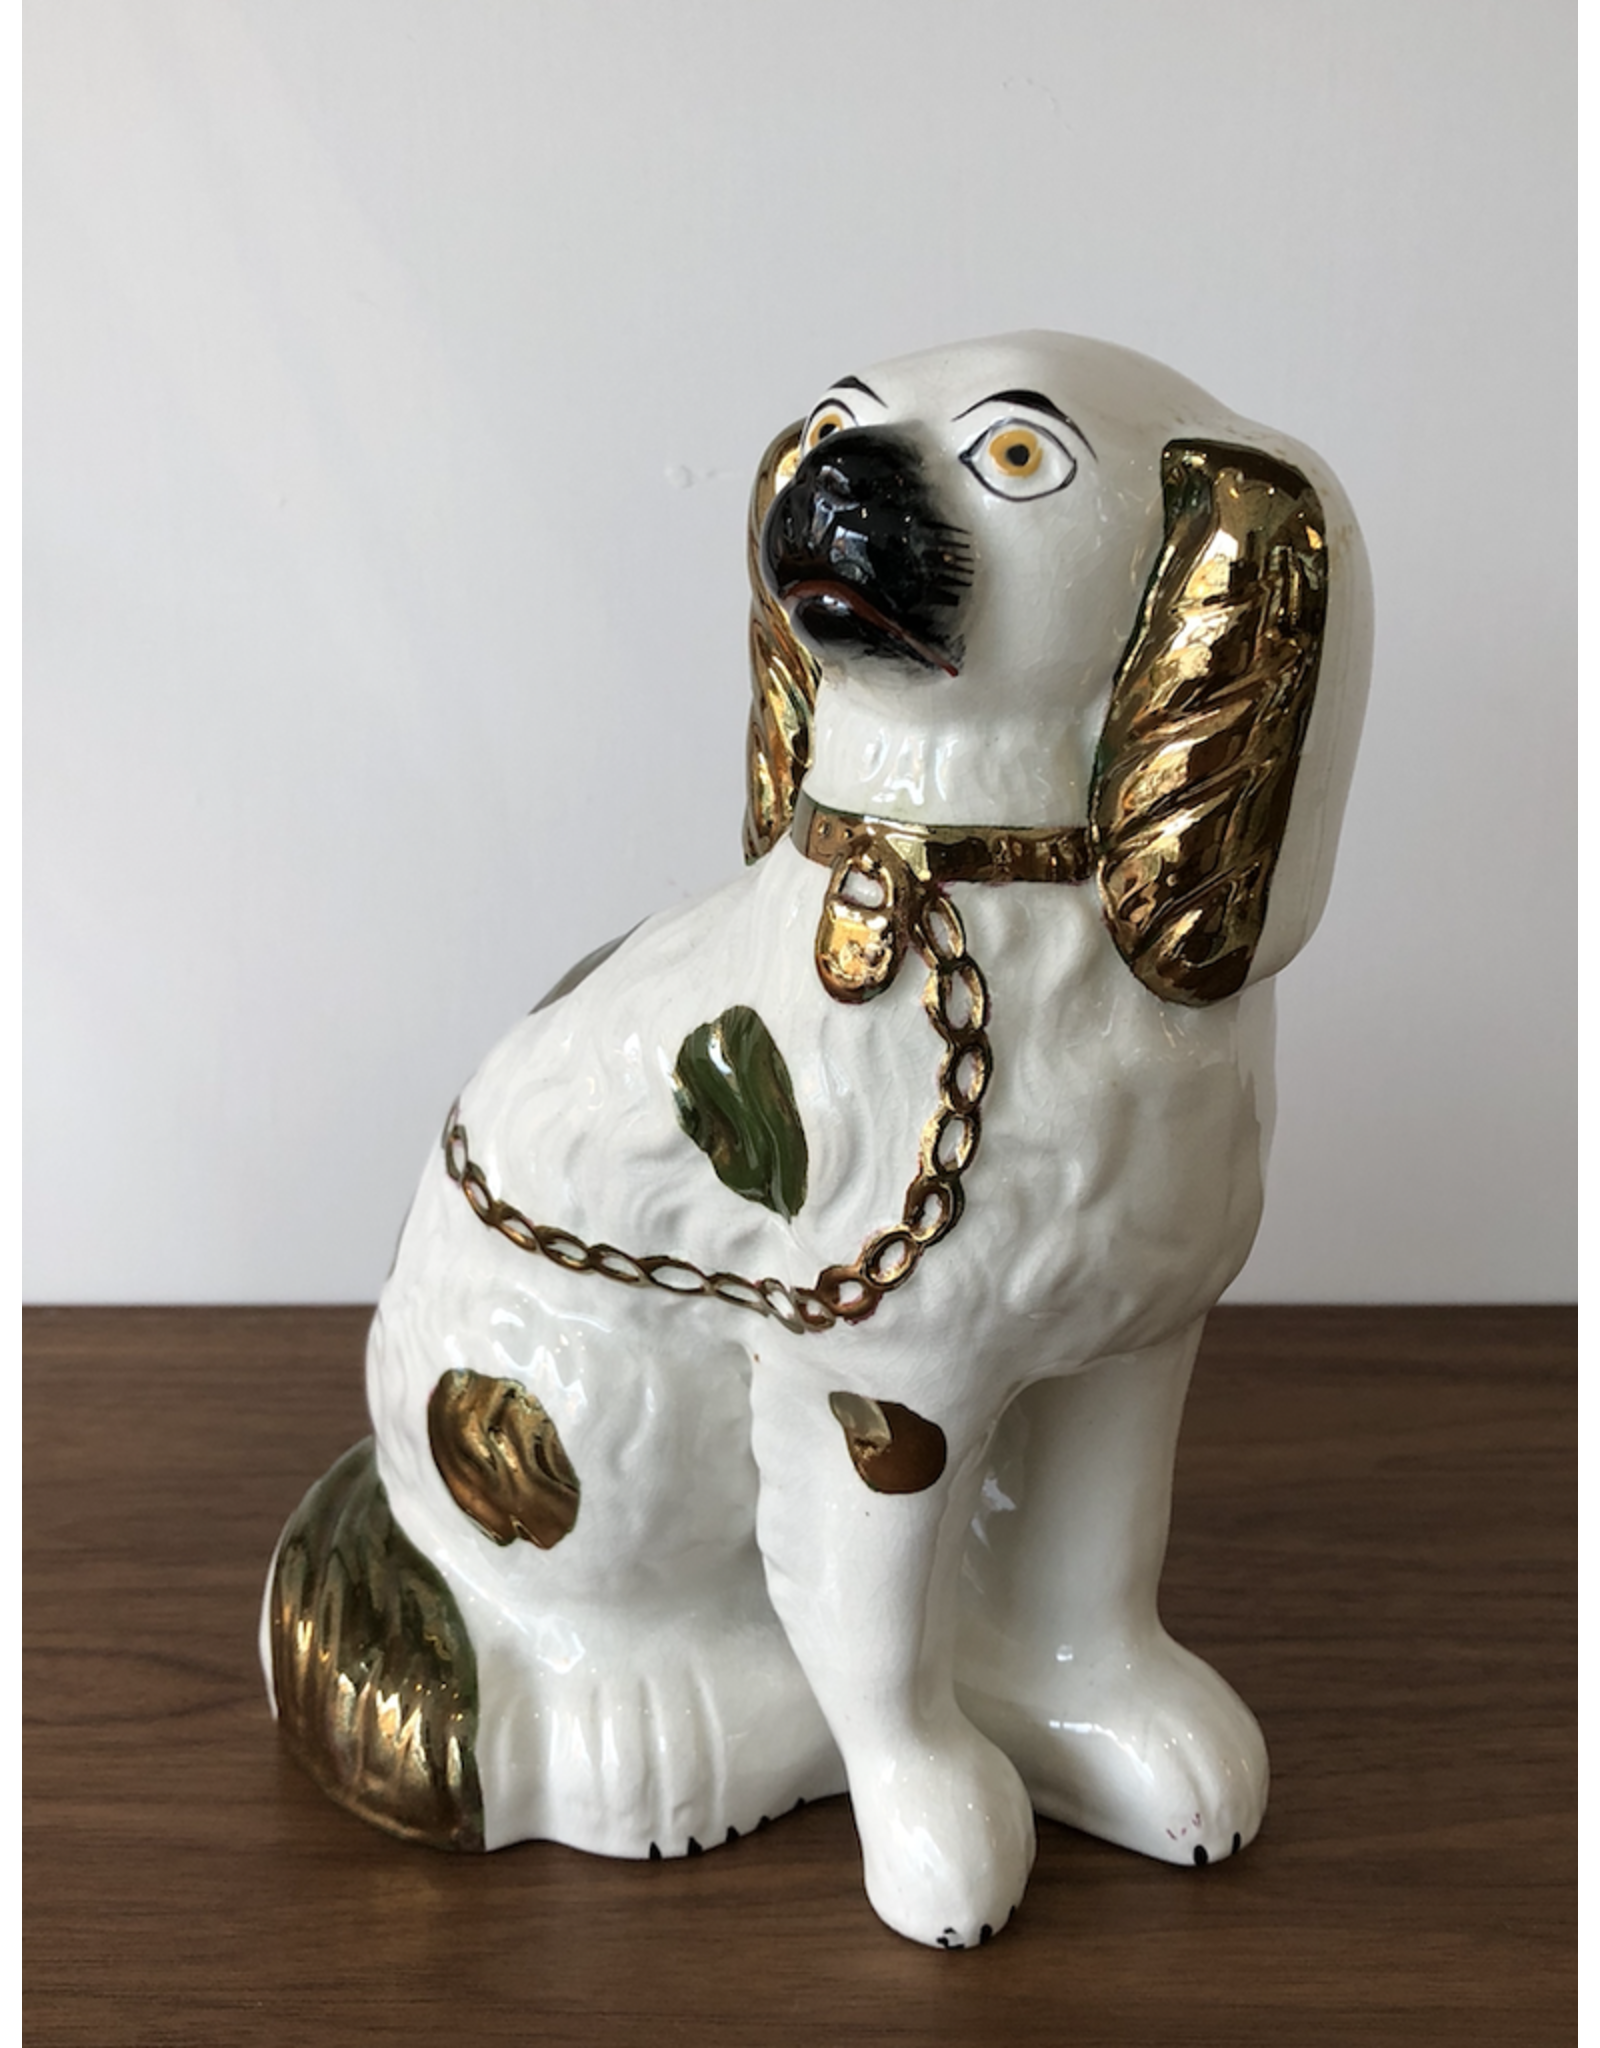 MANKS ANTIQUES STAFFORDSHIRE EARTHENWARE KING CHARLES SPANIEL